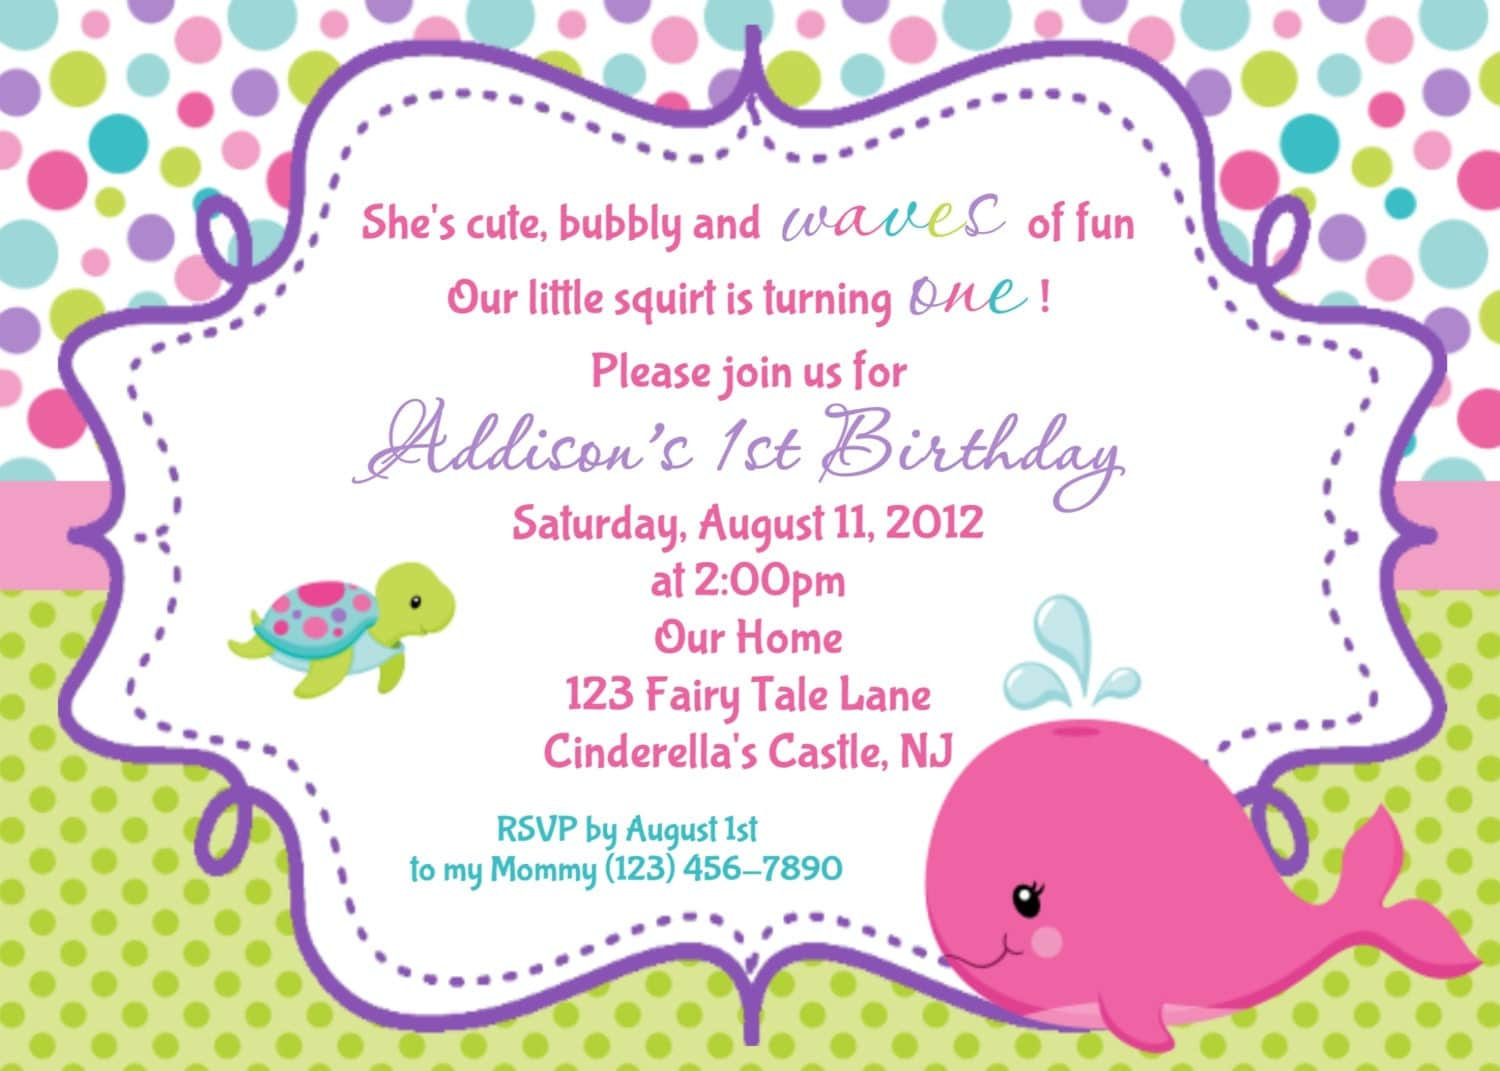 Evite Birthday Invitations Free with great invitation template